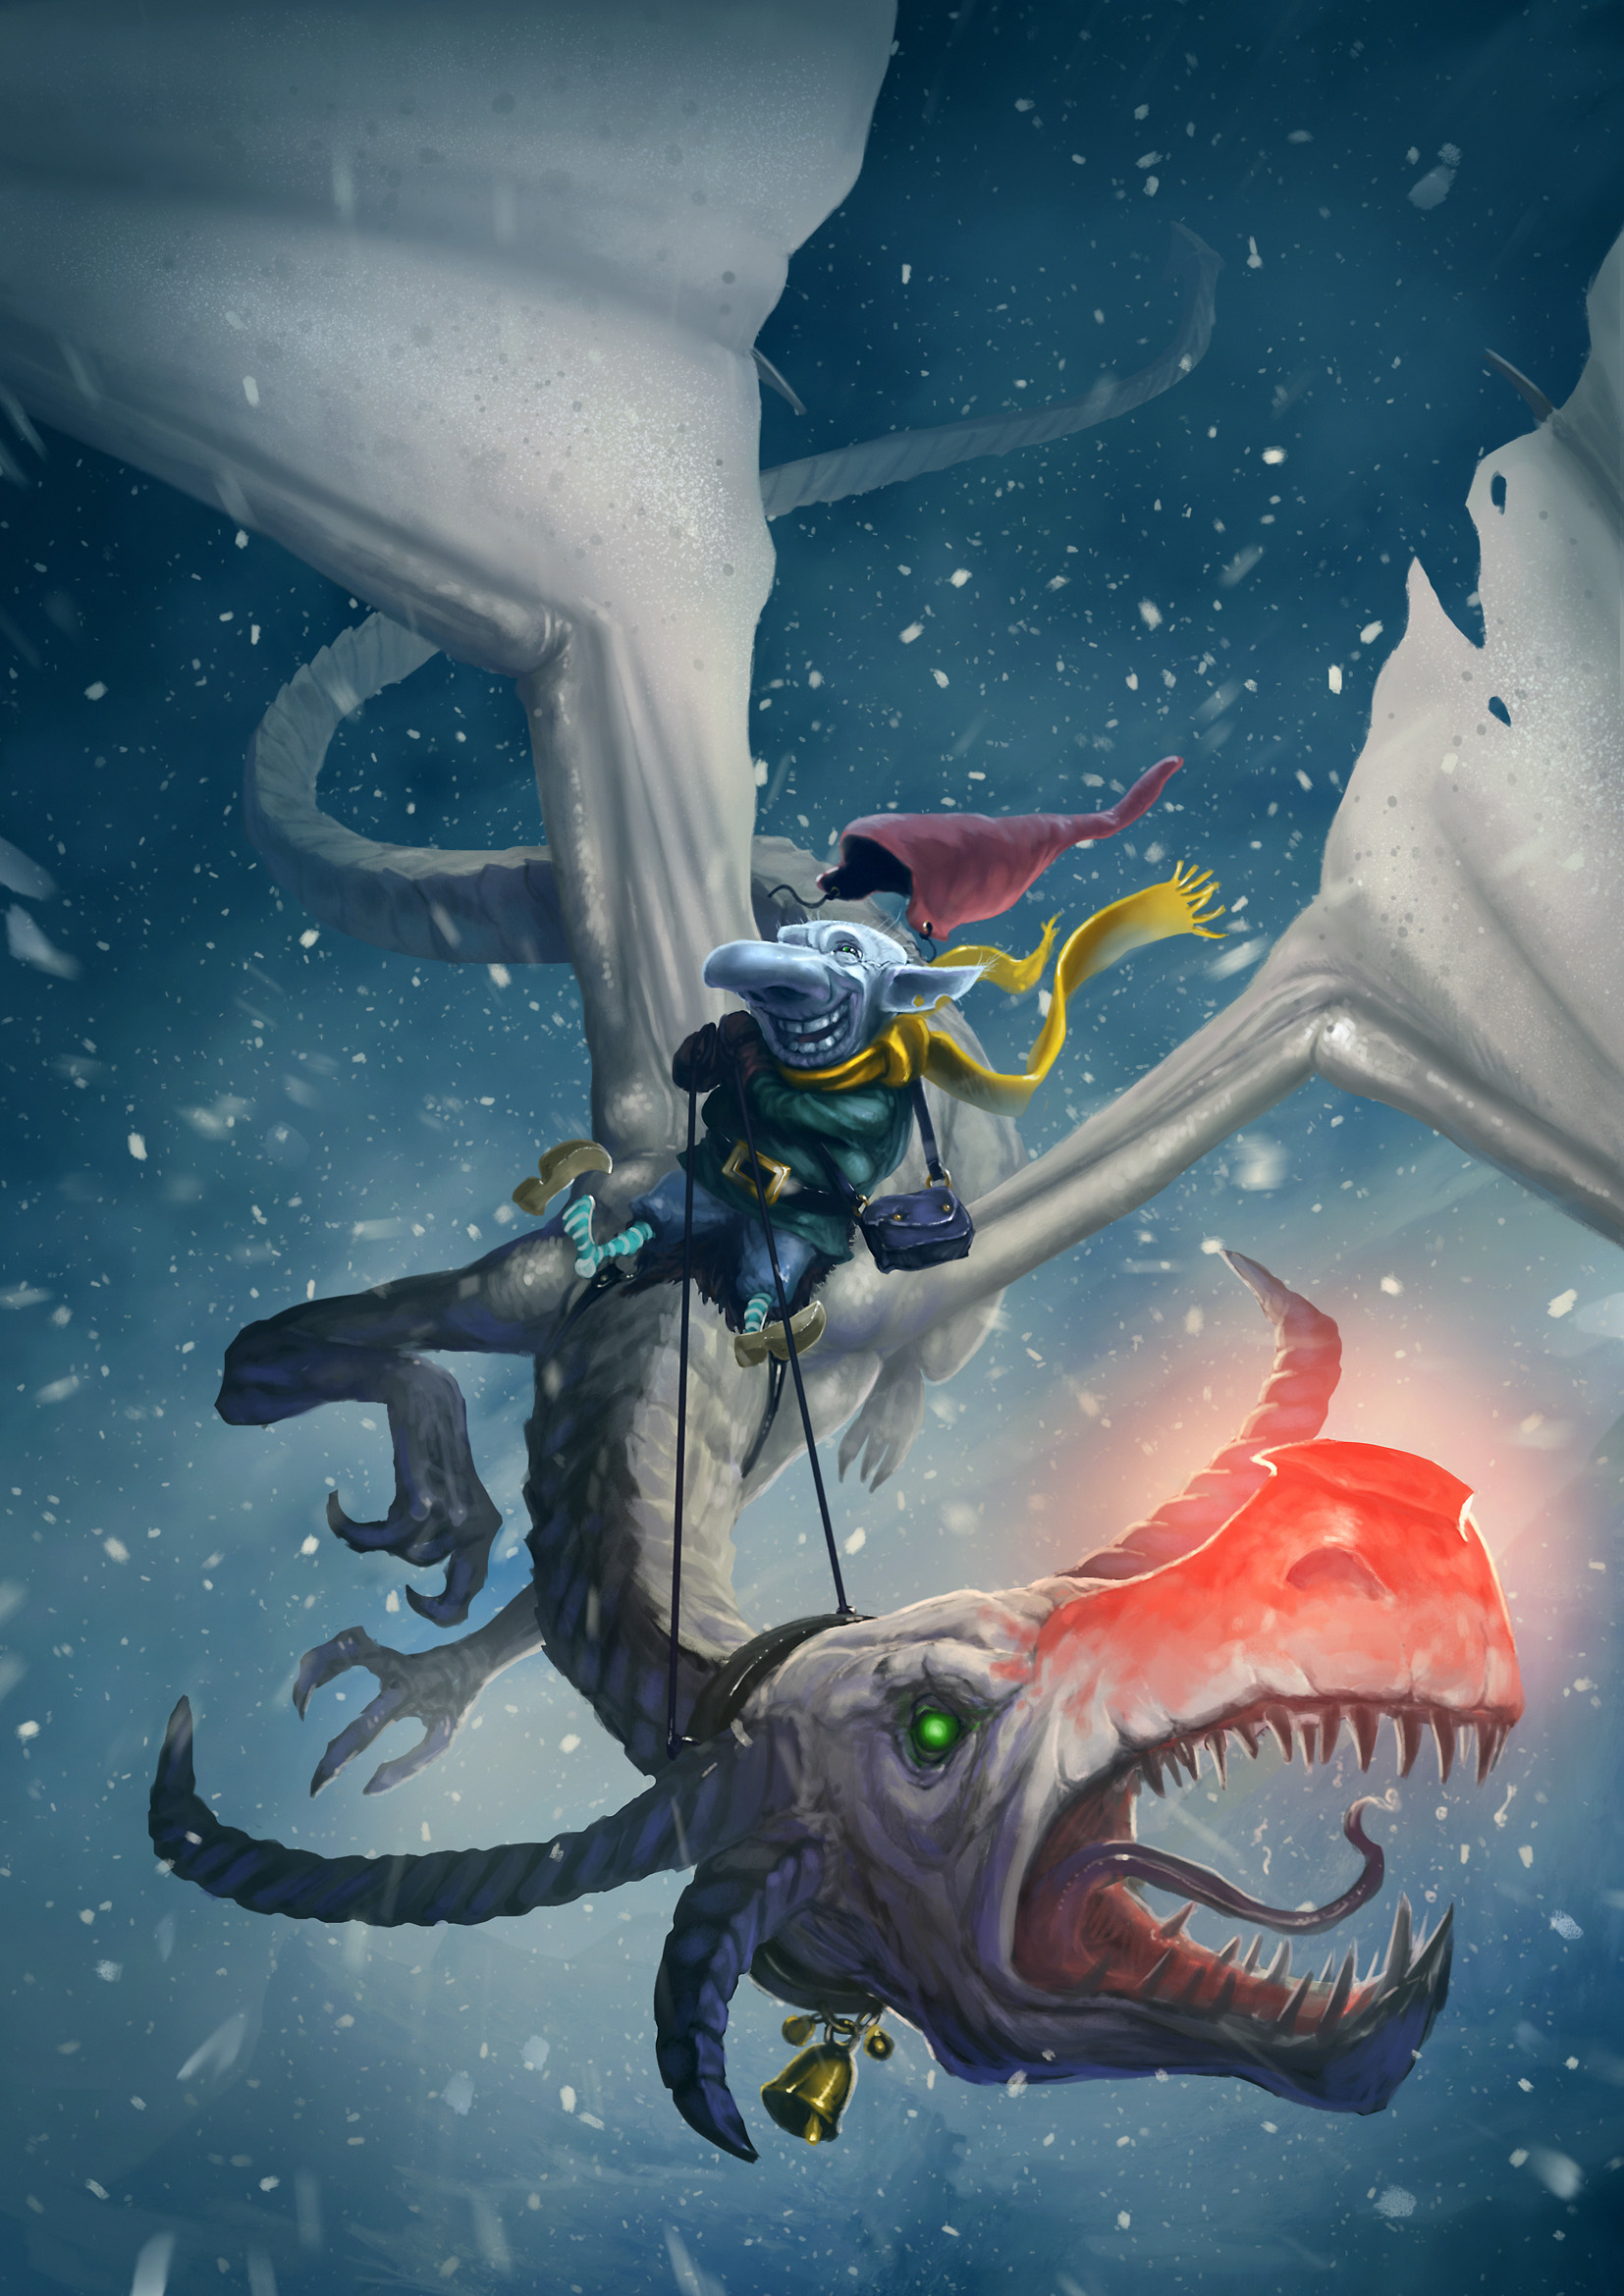 Next Christmas, we'll try shipping by dragon-riding frost goblin, as we've heard they're quite reliable. (Delightful artwork by Jonas Springborg.)